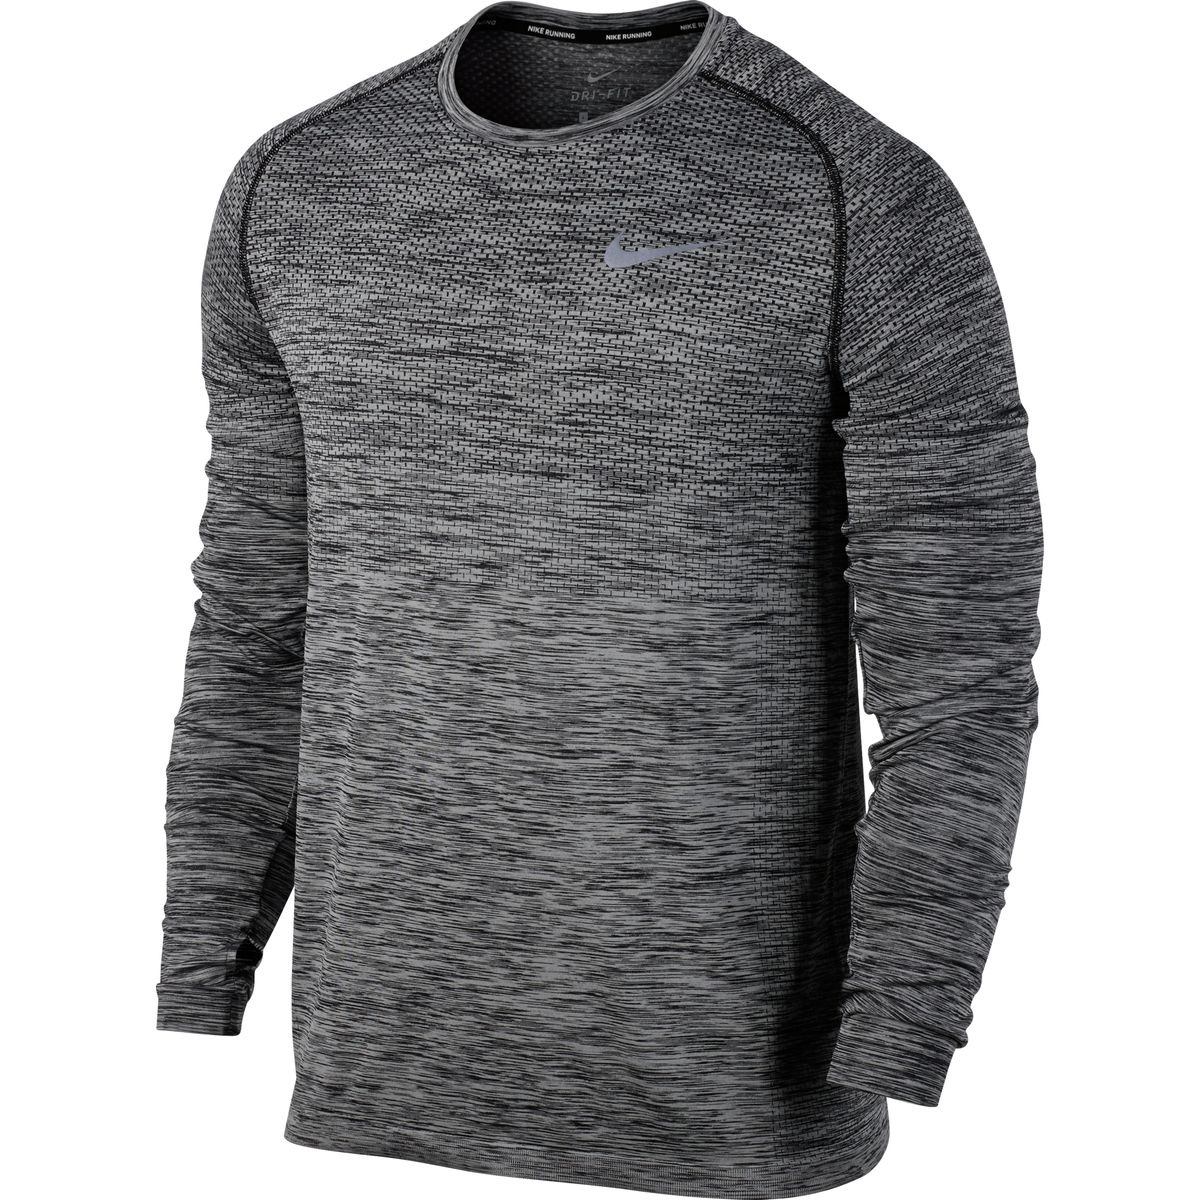 Nike Dri-FIT Knit Shirt - Men